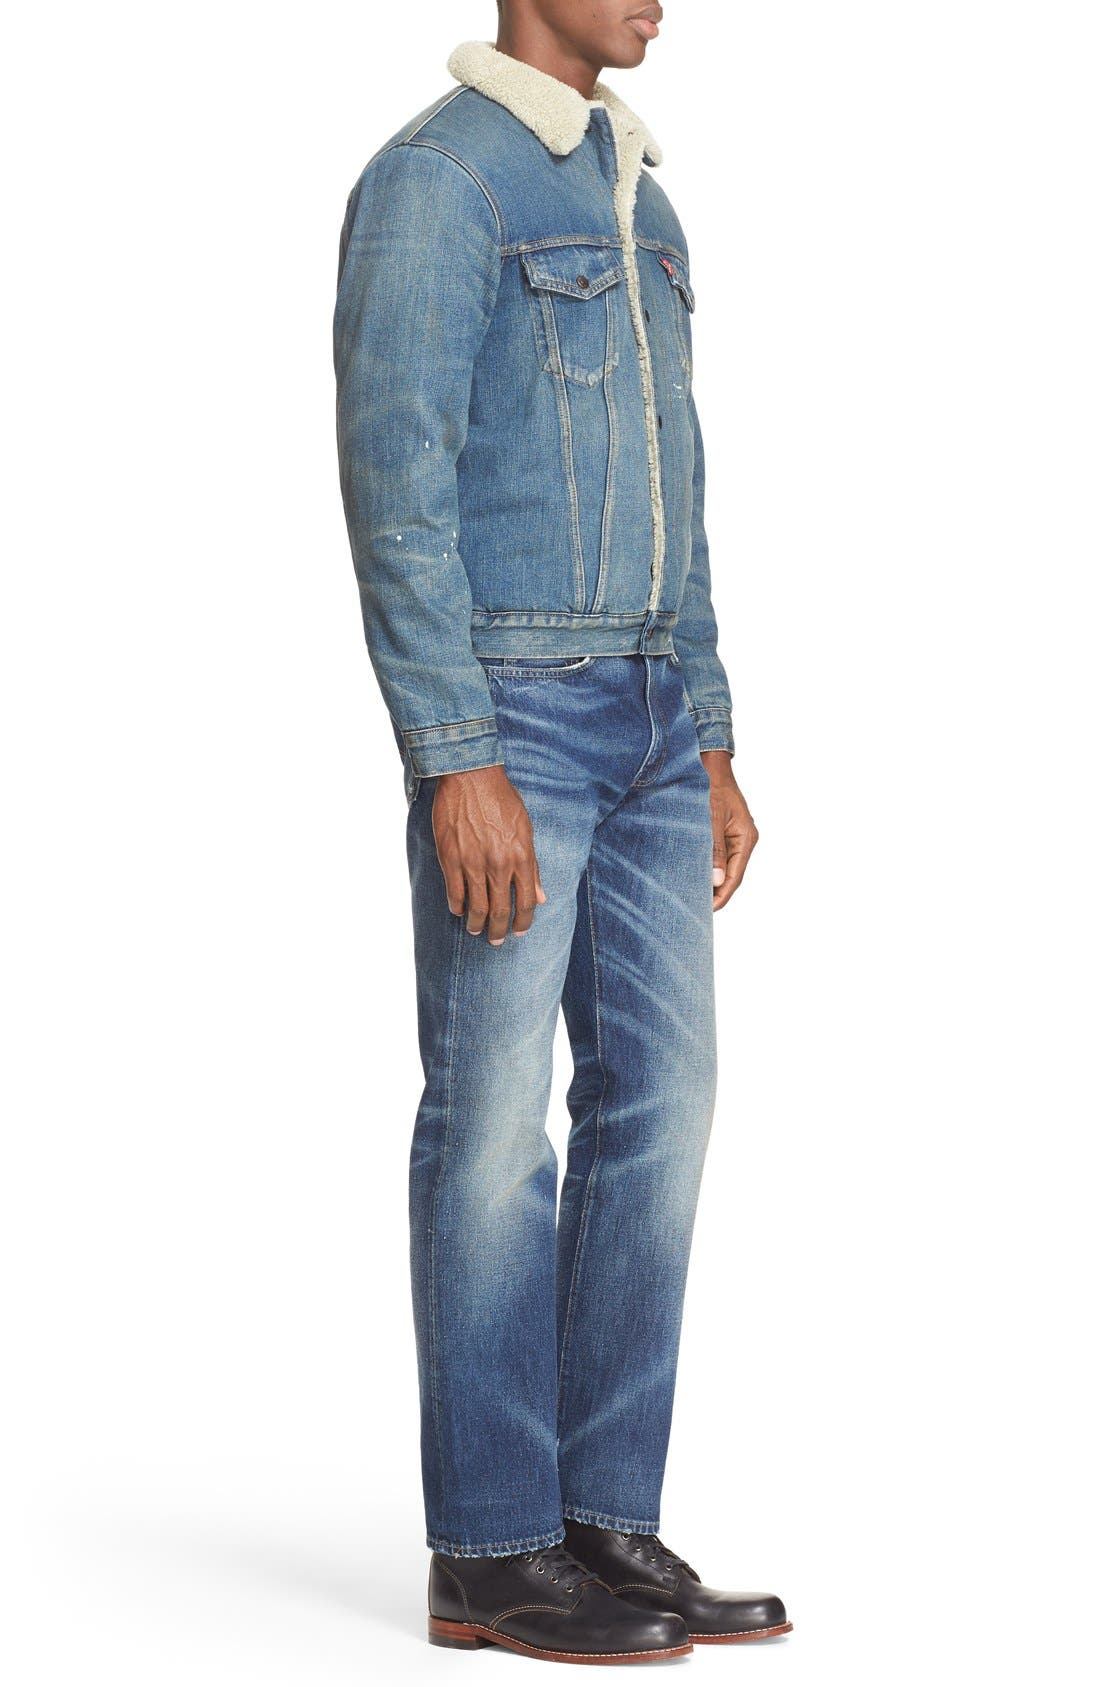 '1967 Type III' Denim Jacket with Faux Fur Collar,                             Alternate thumbnail 4, color,                             400